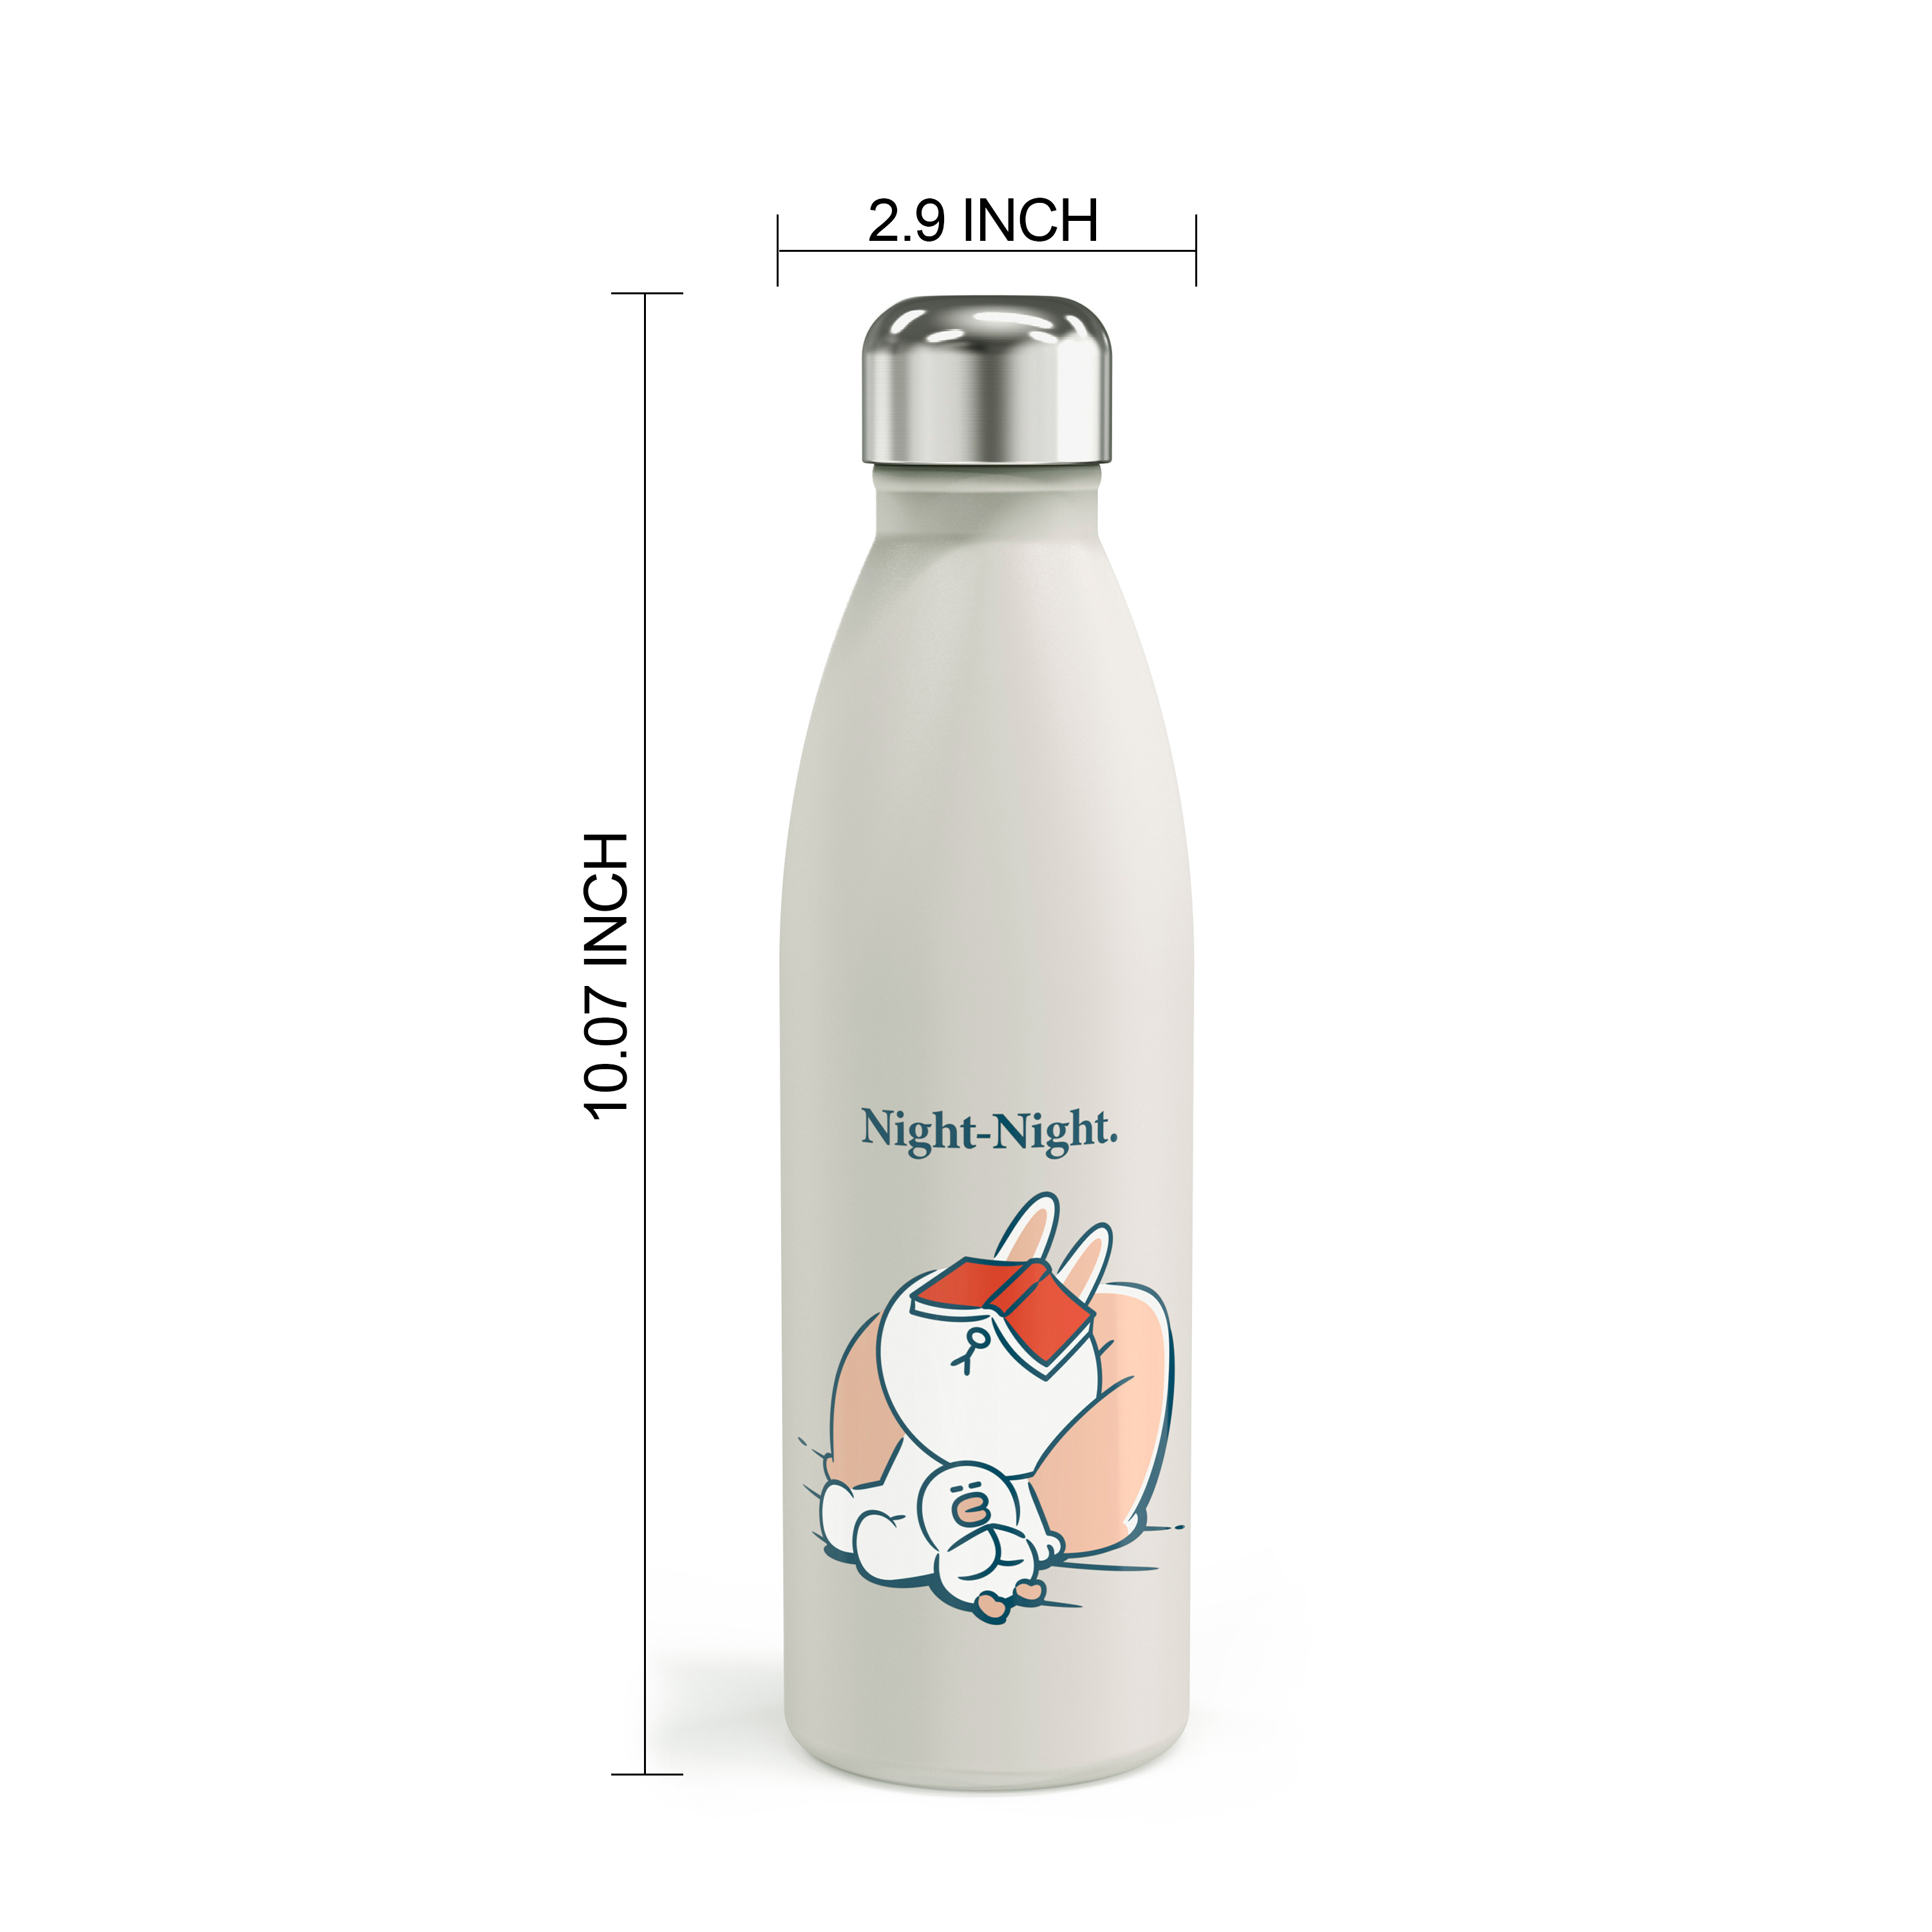 Line Friends 17.5 ounce Vacuum Insulated Stainless Steel Water Bottle, Sleepy Bunny slideshow image 7